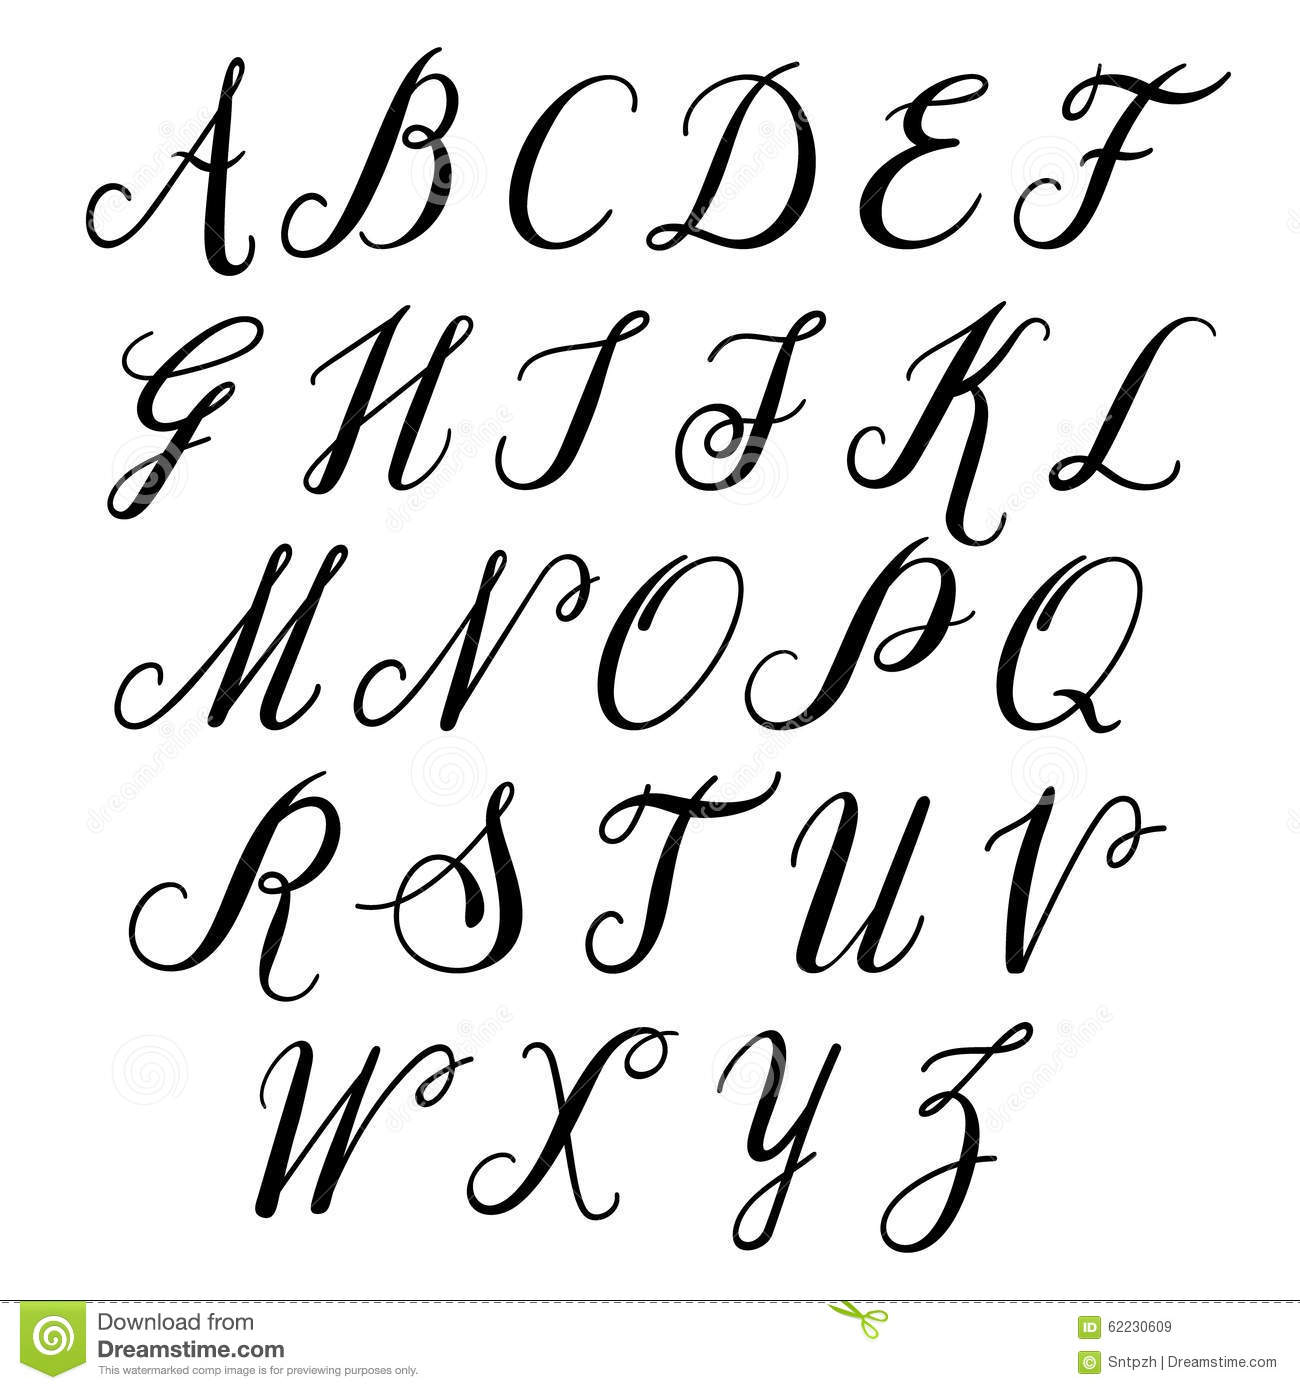 Image Result For Cursive Writing